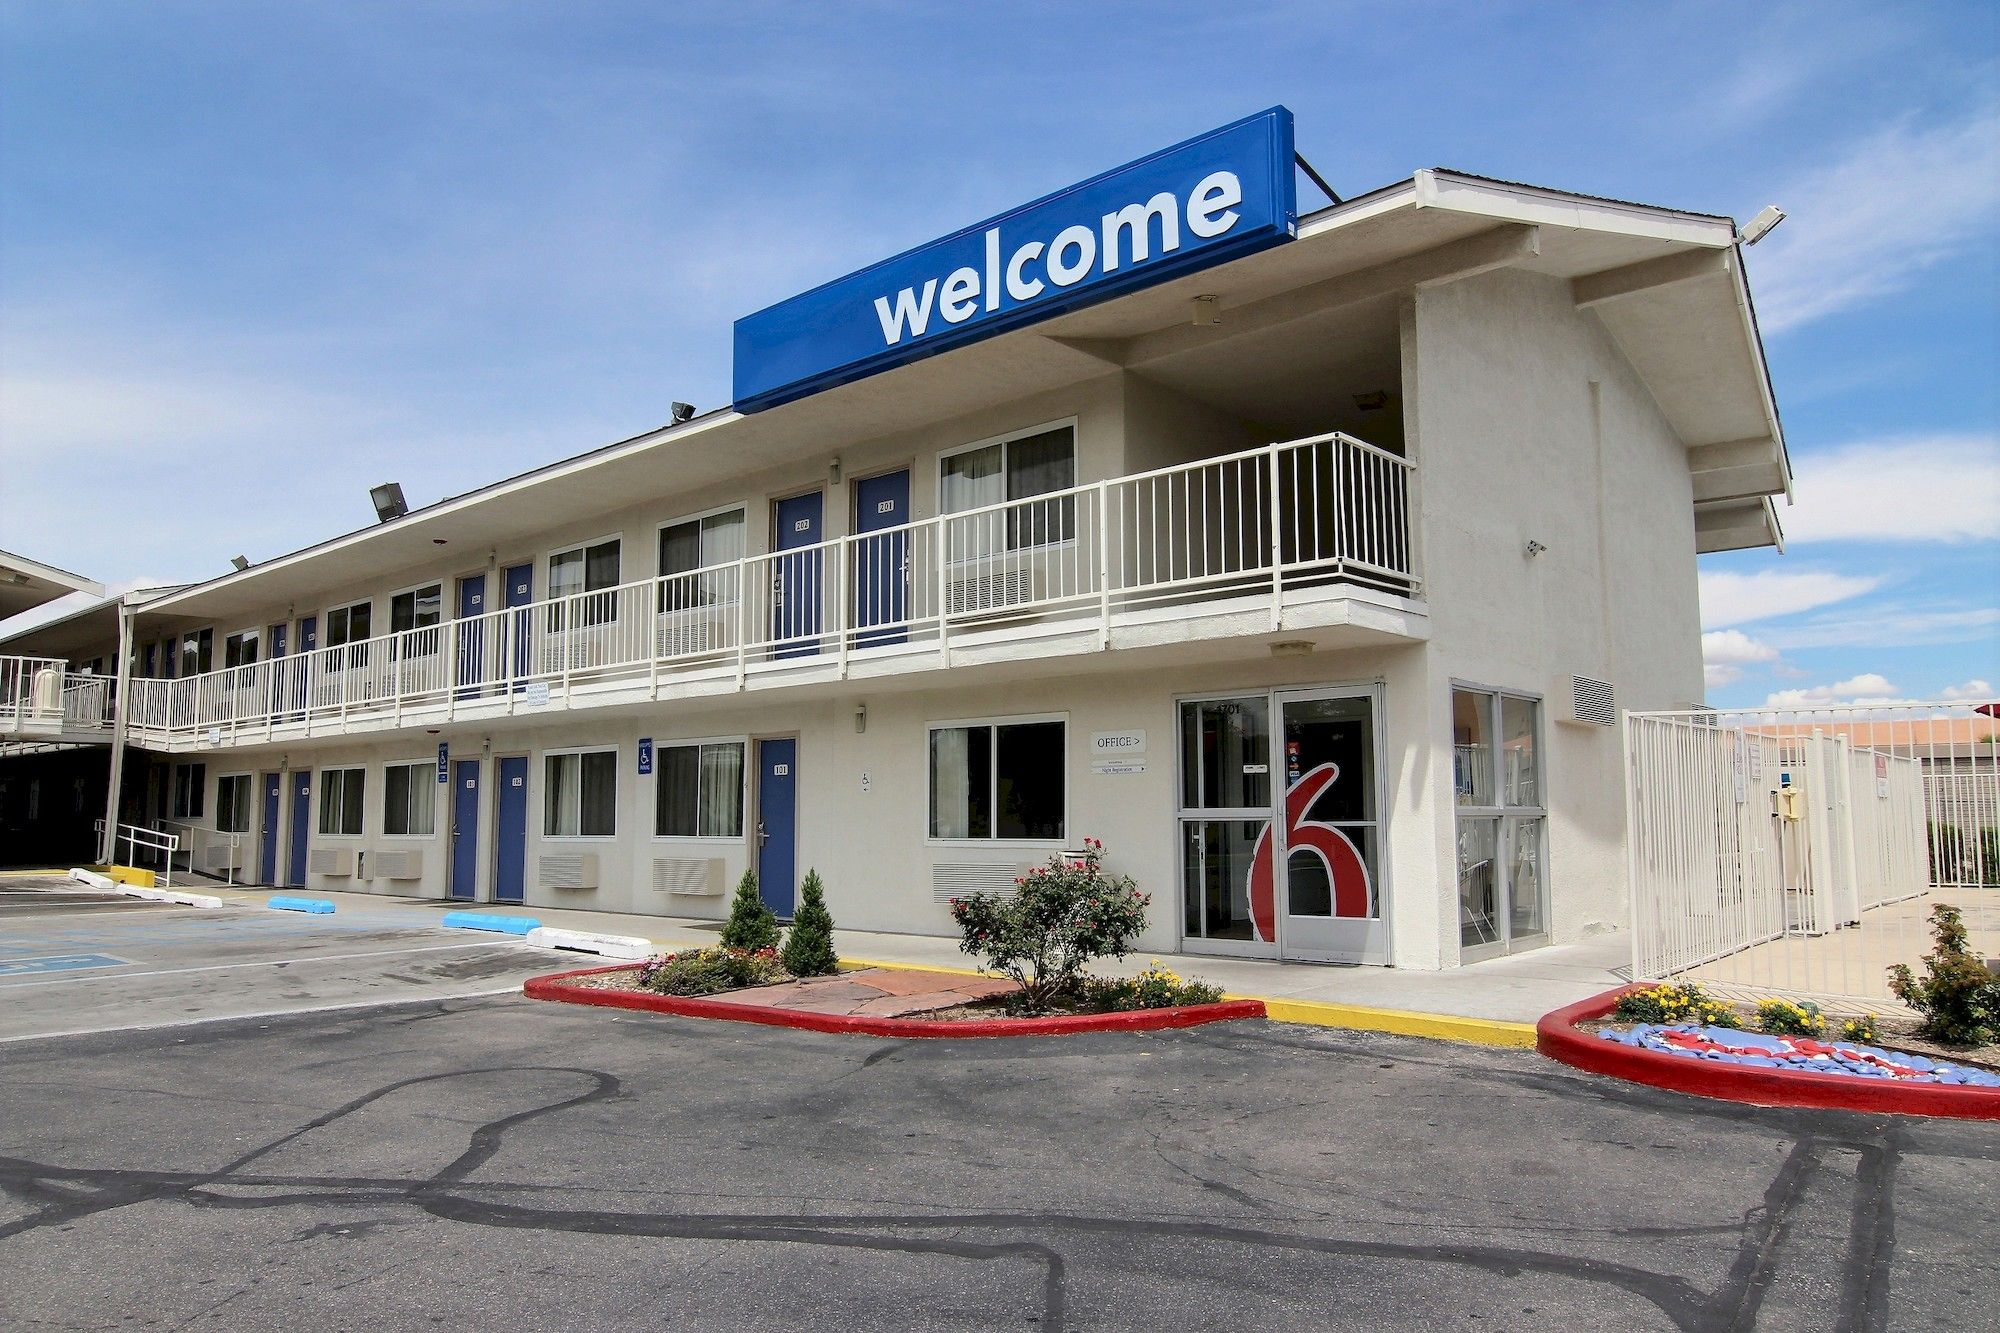 Hotel Discounts Albuquerque is the Albuquerque area travel booking site, dedicated to finding the best hotel rates on the web in Albuquerque and surrounding areas.